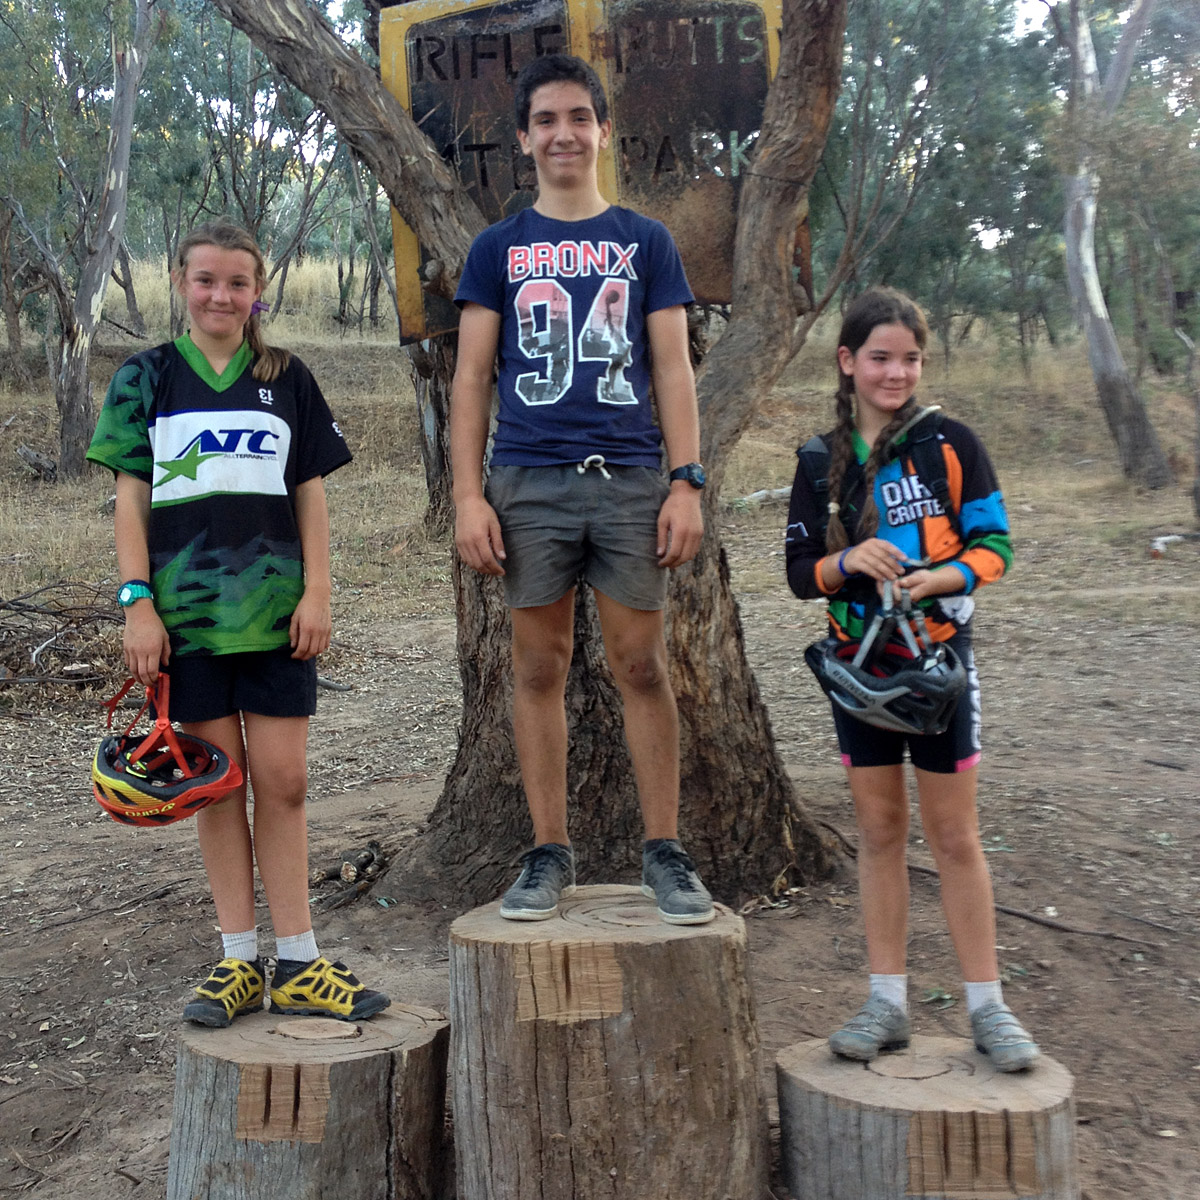 The under 15s podium: 2. Elise Empey; 1. James Griffin; 3. Ruby Dobson.